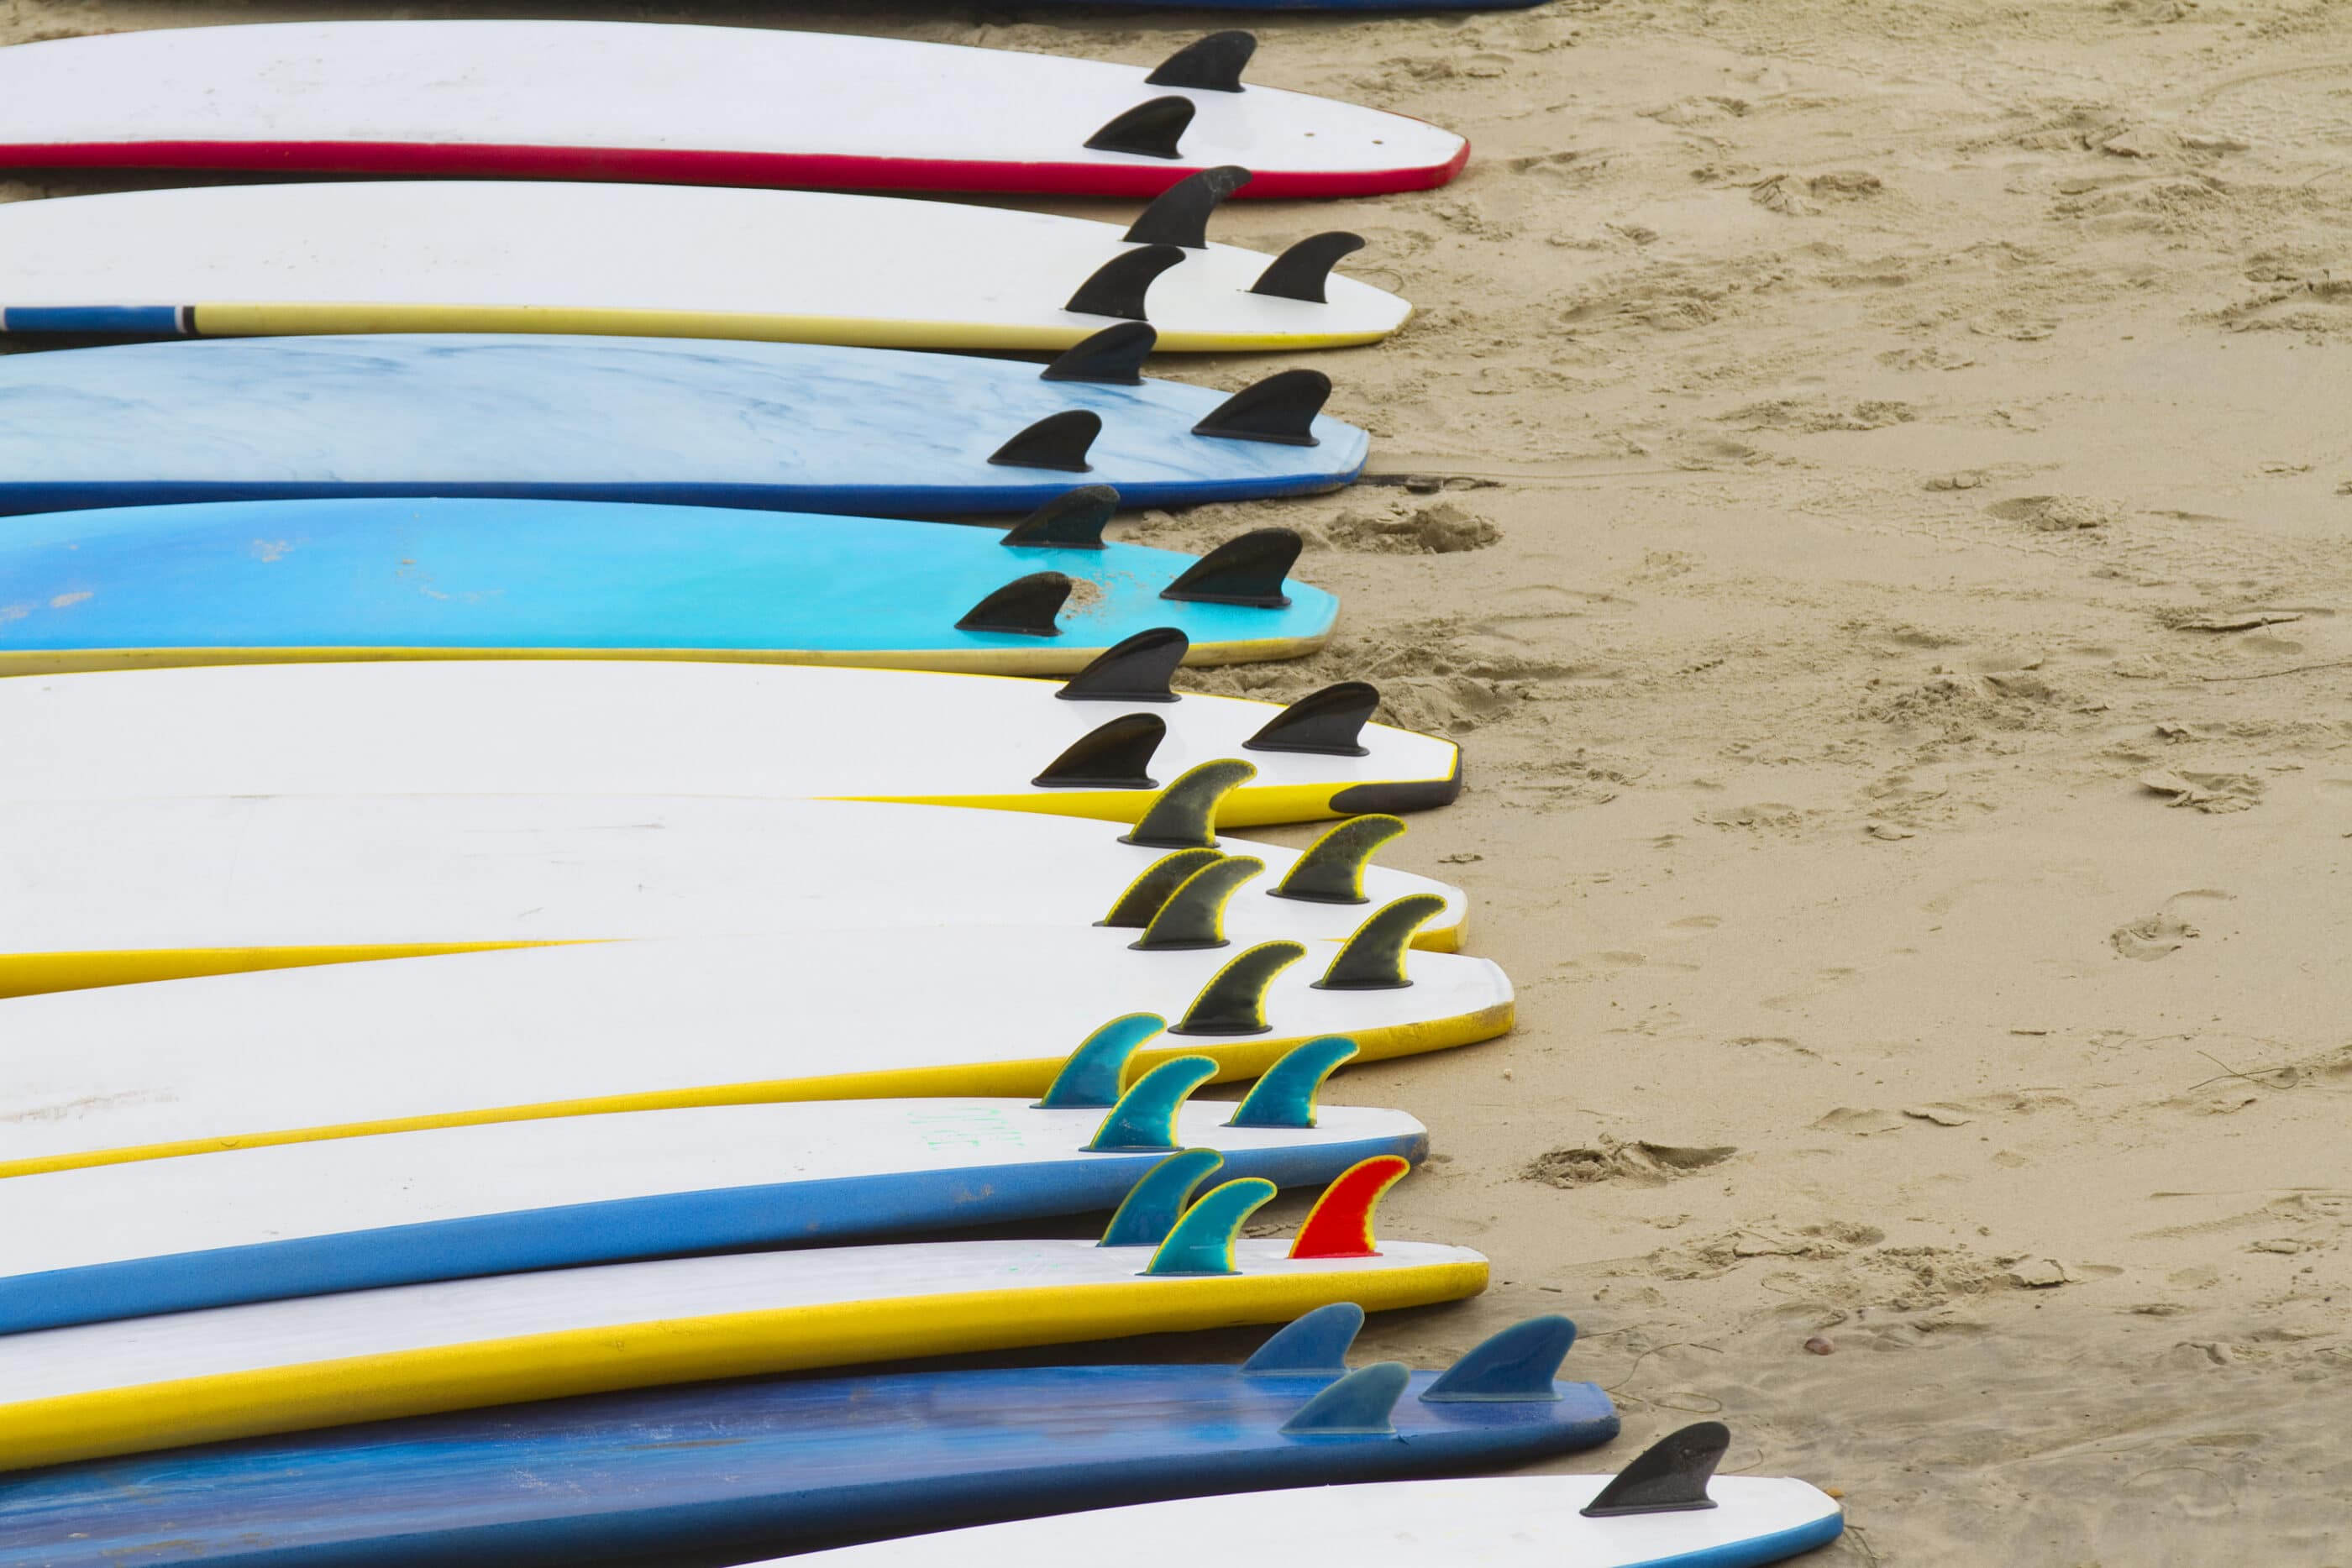 Surf boards lined up on the sand.